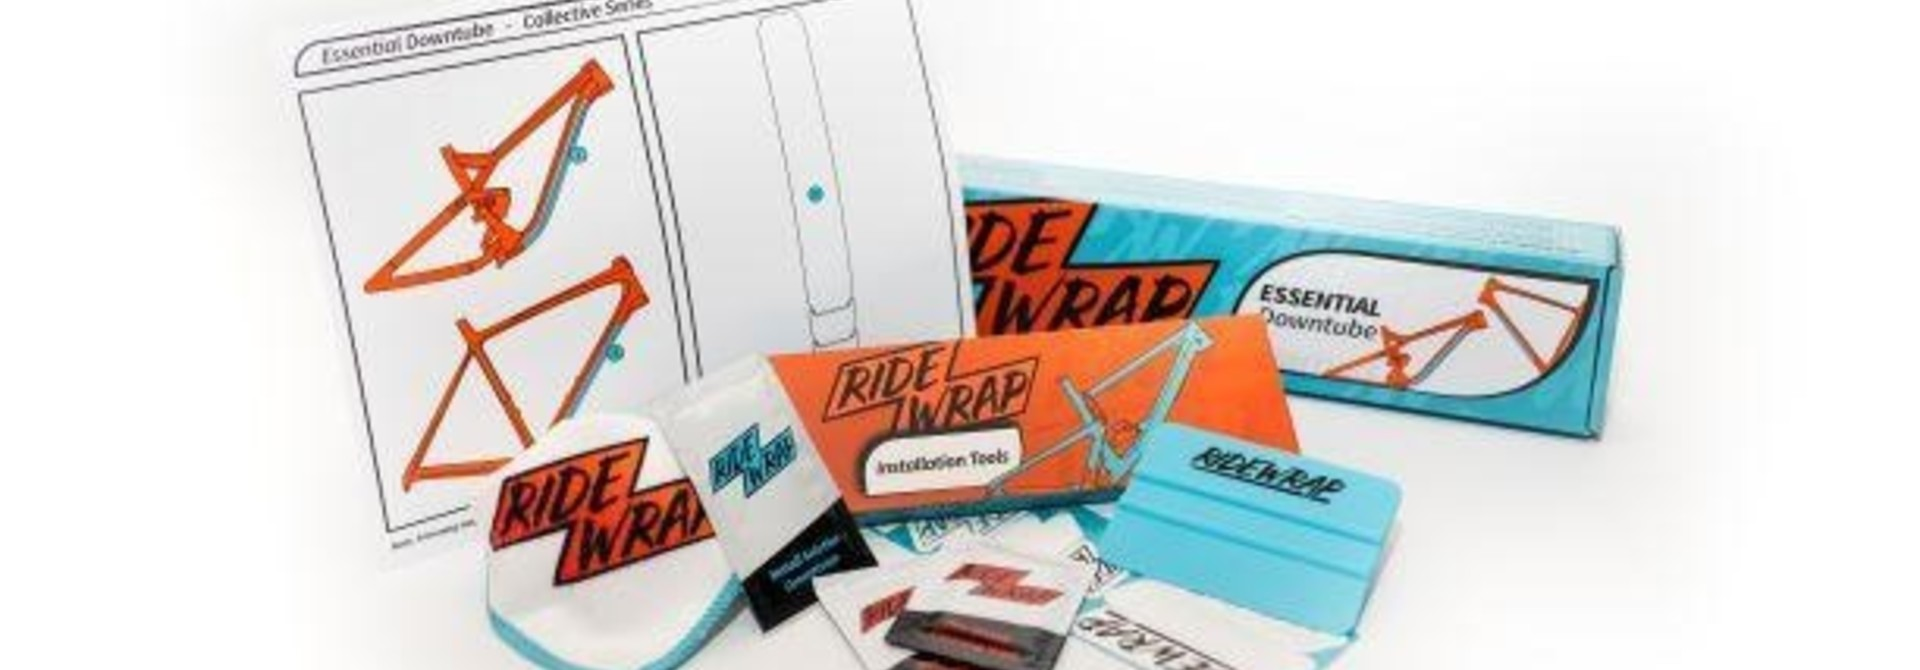 Ridewrap Essential Downtube Protection Kit, Collective Series, Clear Gloss Finish, Xtra Thick